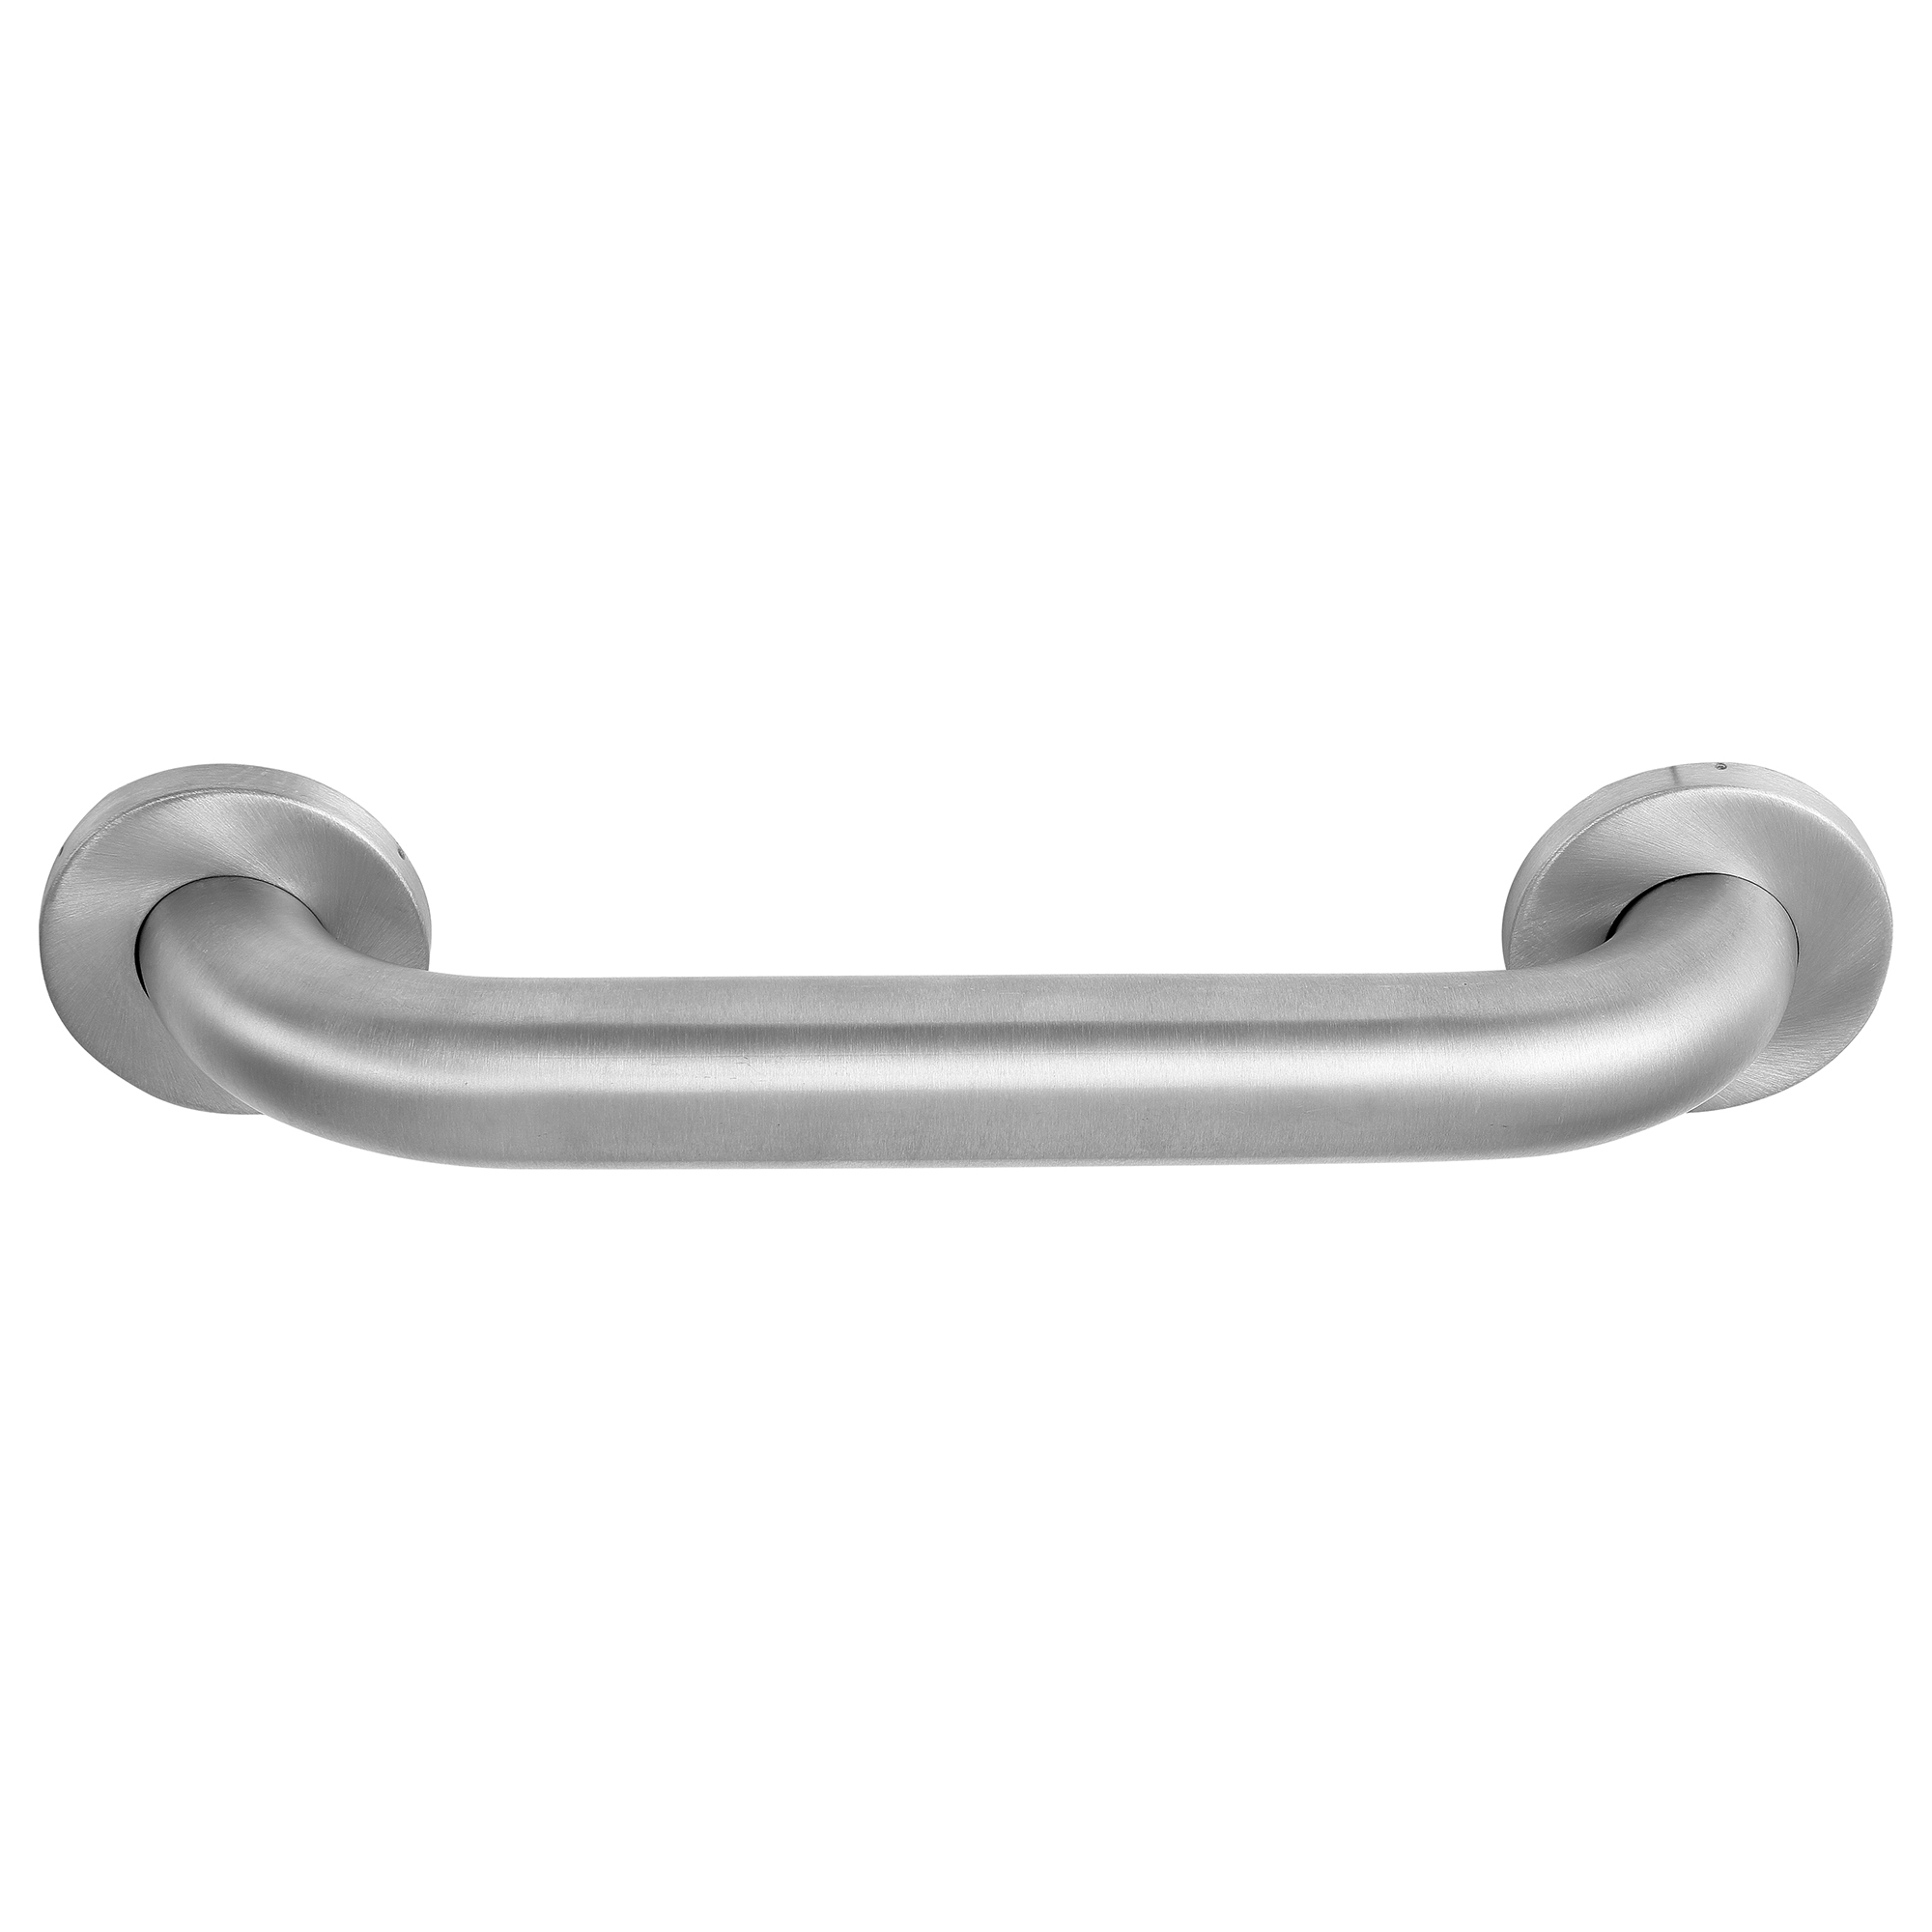 Grab Bar 304 Stainless Steel Safety Bar for Bathroom, Shower ...